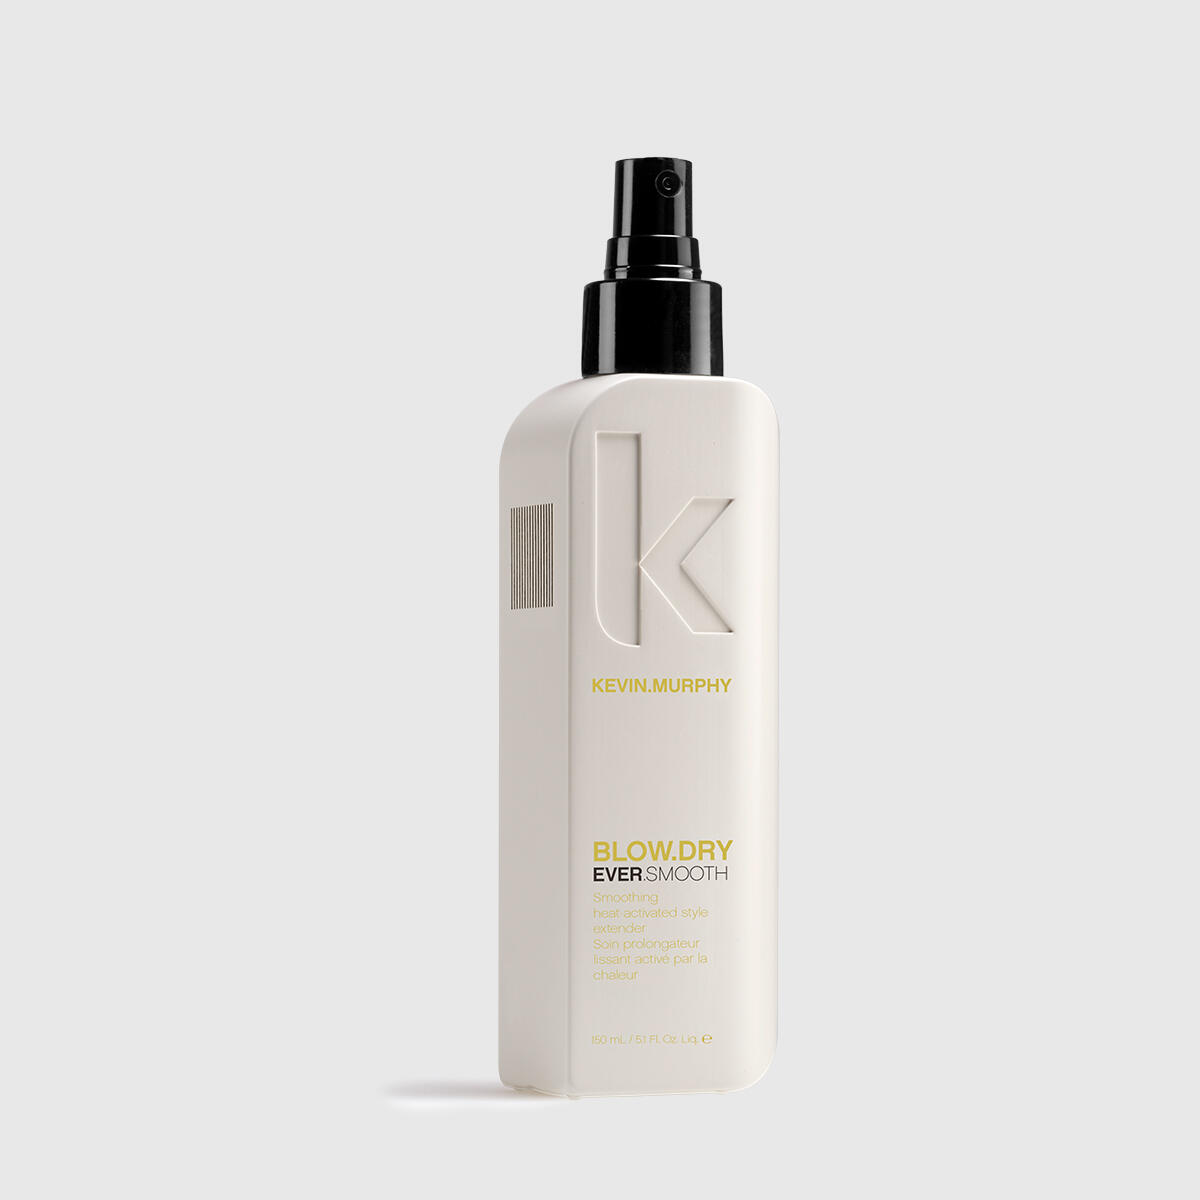 Kevin Murphy Blow Dry Ever Smooth null